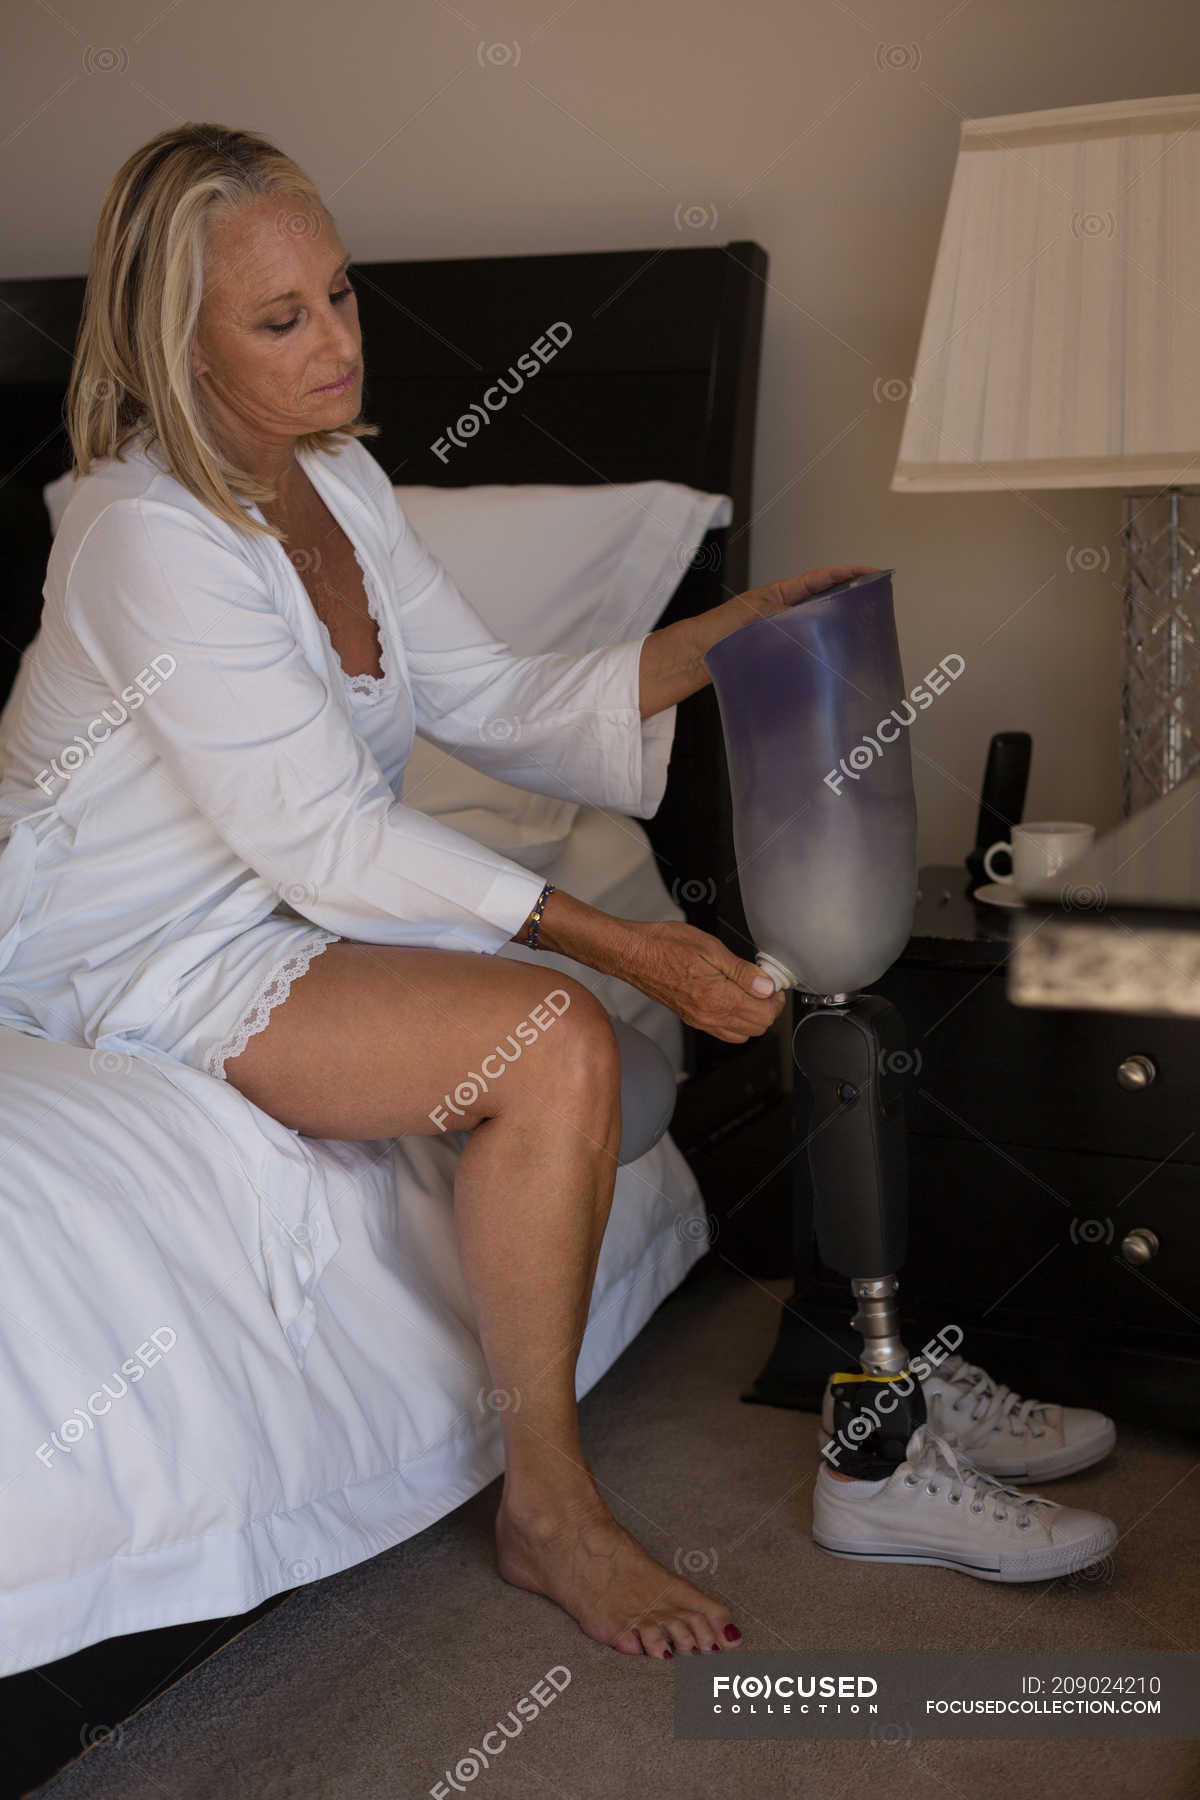 Mature women legs Mature Woman Holding Prosthetic Leg In Bedroom At Home Physical Impairment Authentic Stock Photo 209024210